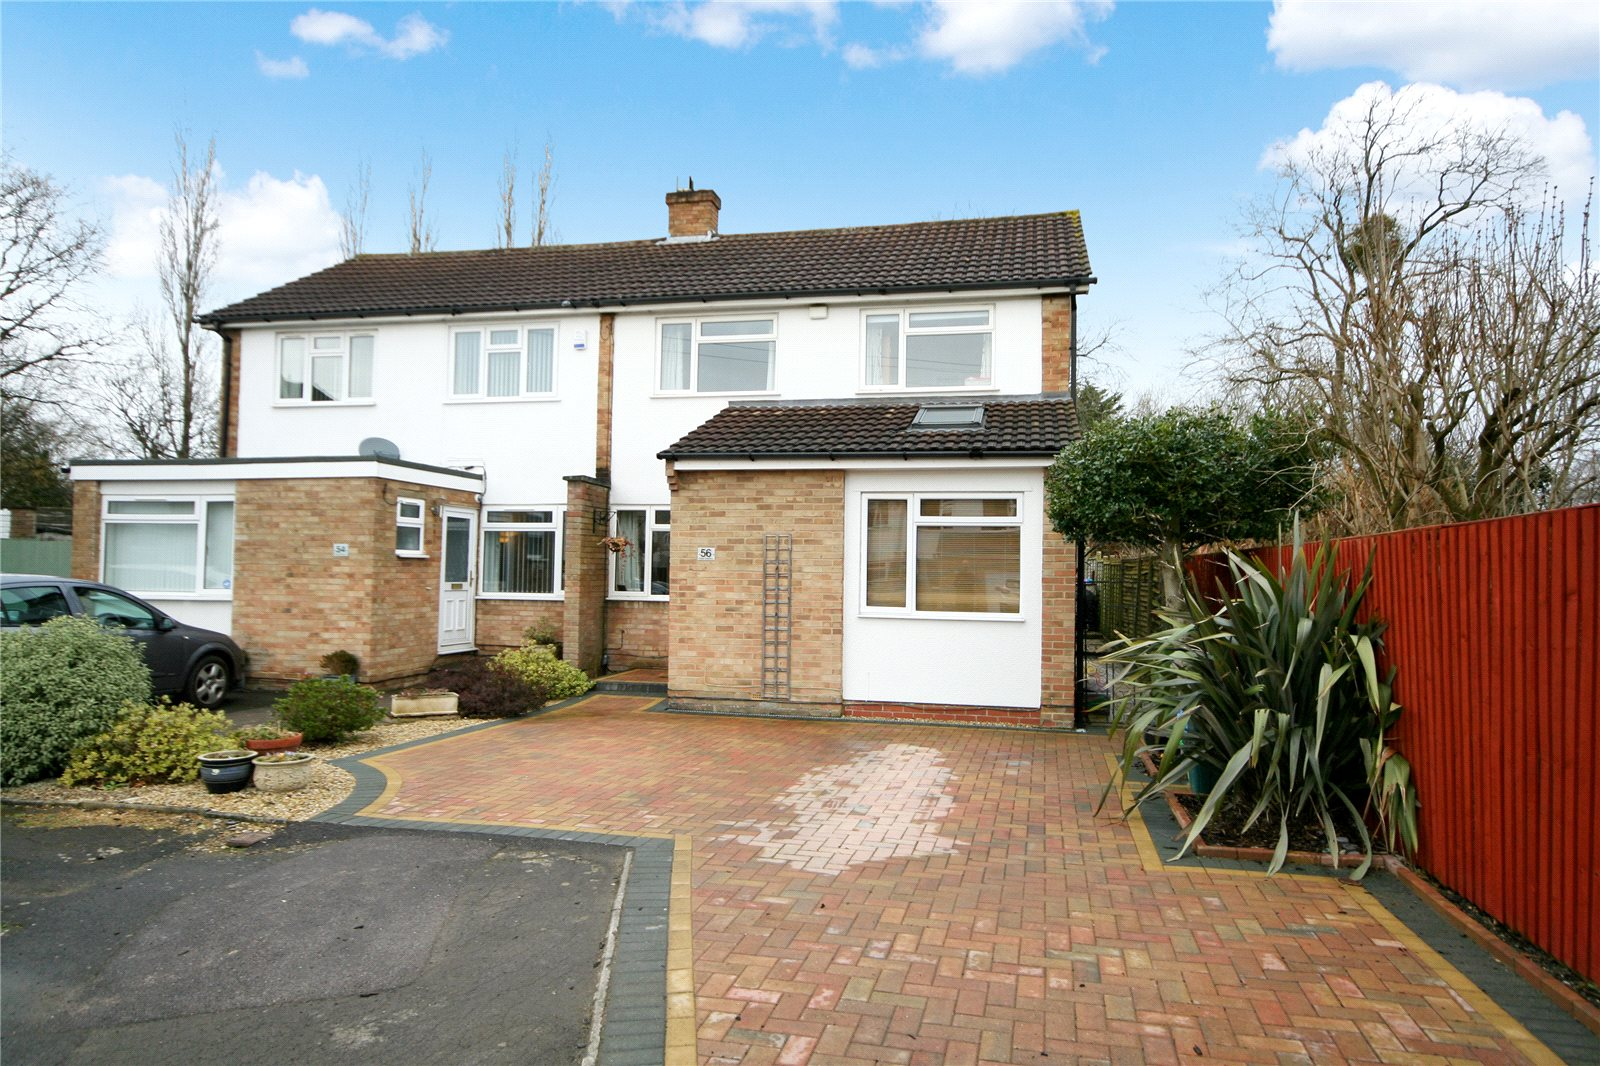 3 Bedrooms Semi Detached House for sale in Hollis Gardens Hatherley Cheltenham GL51